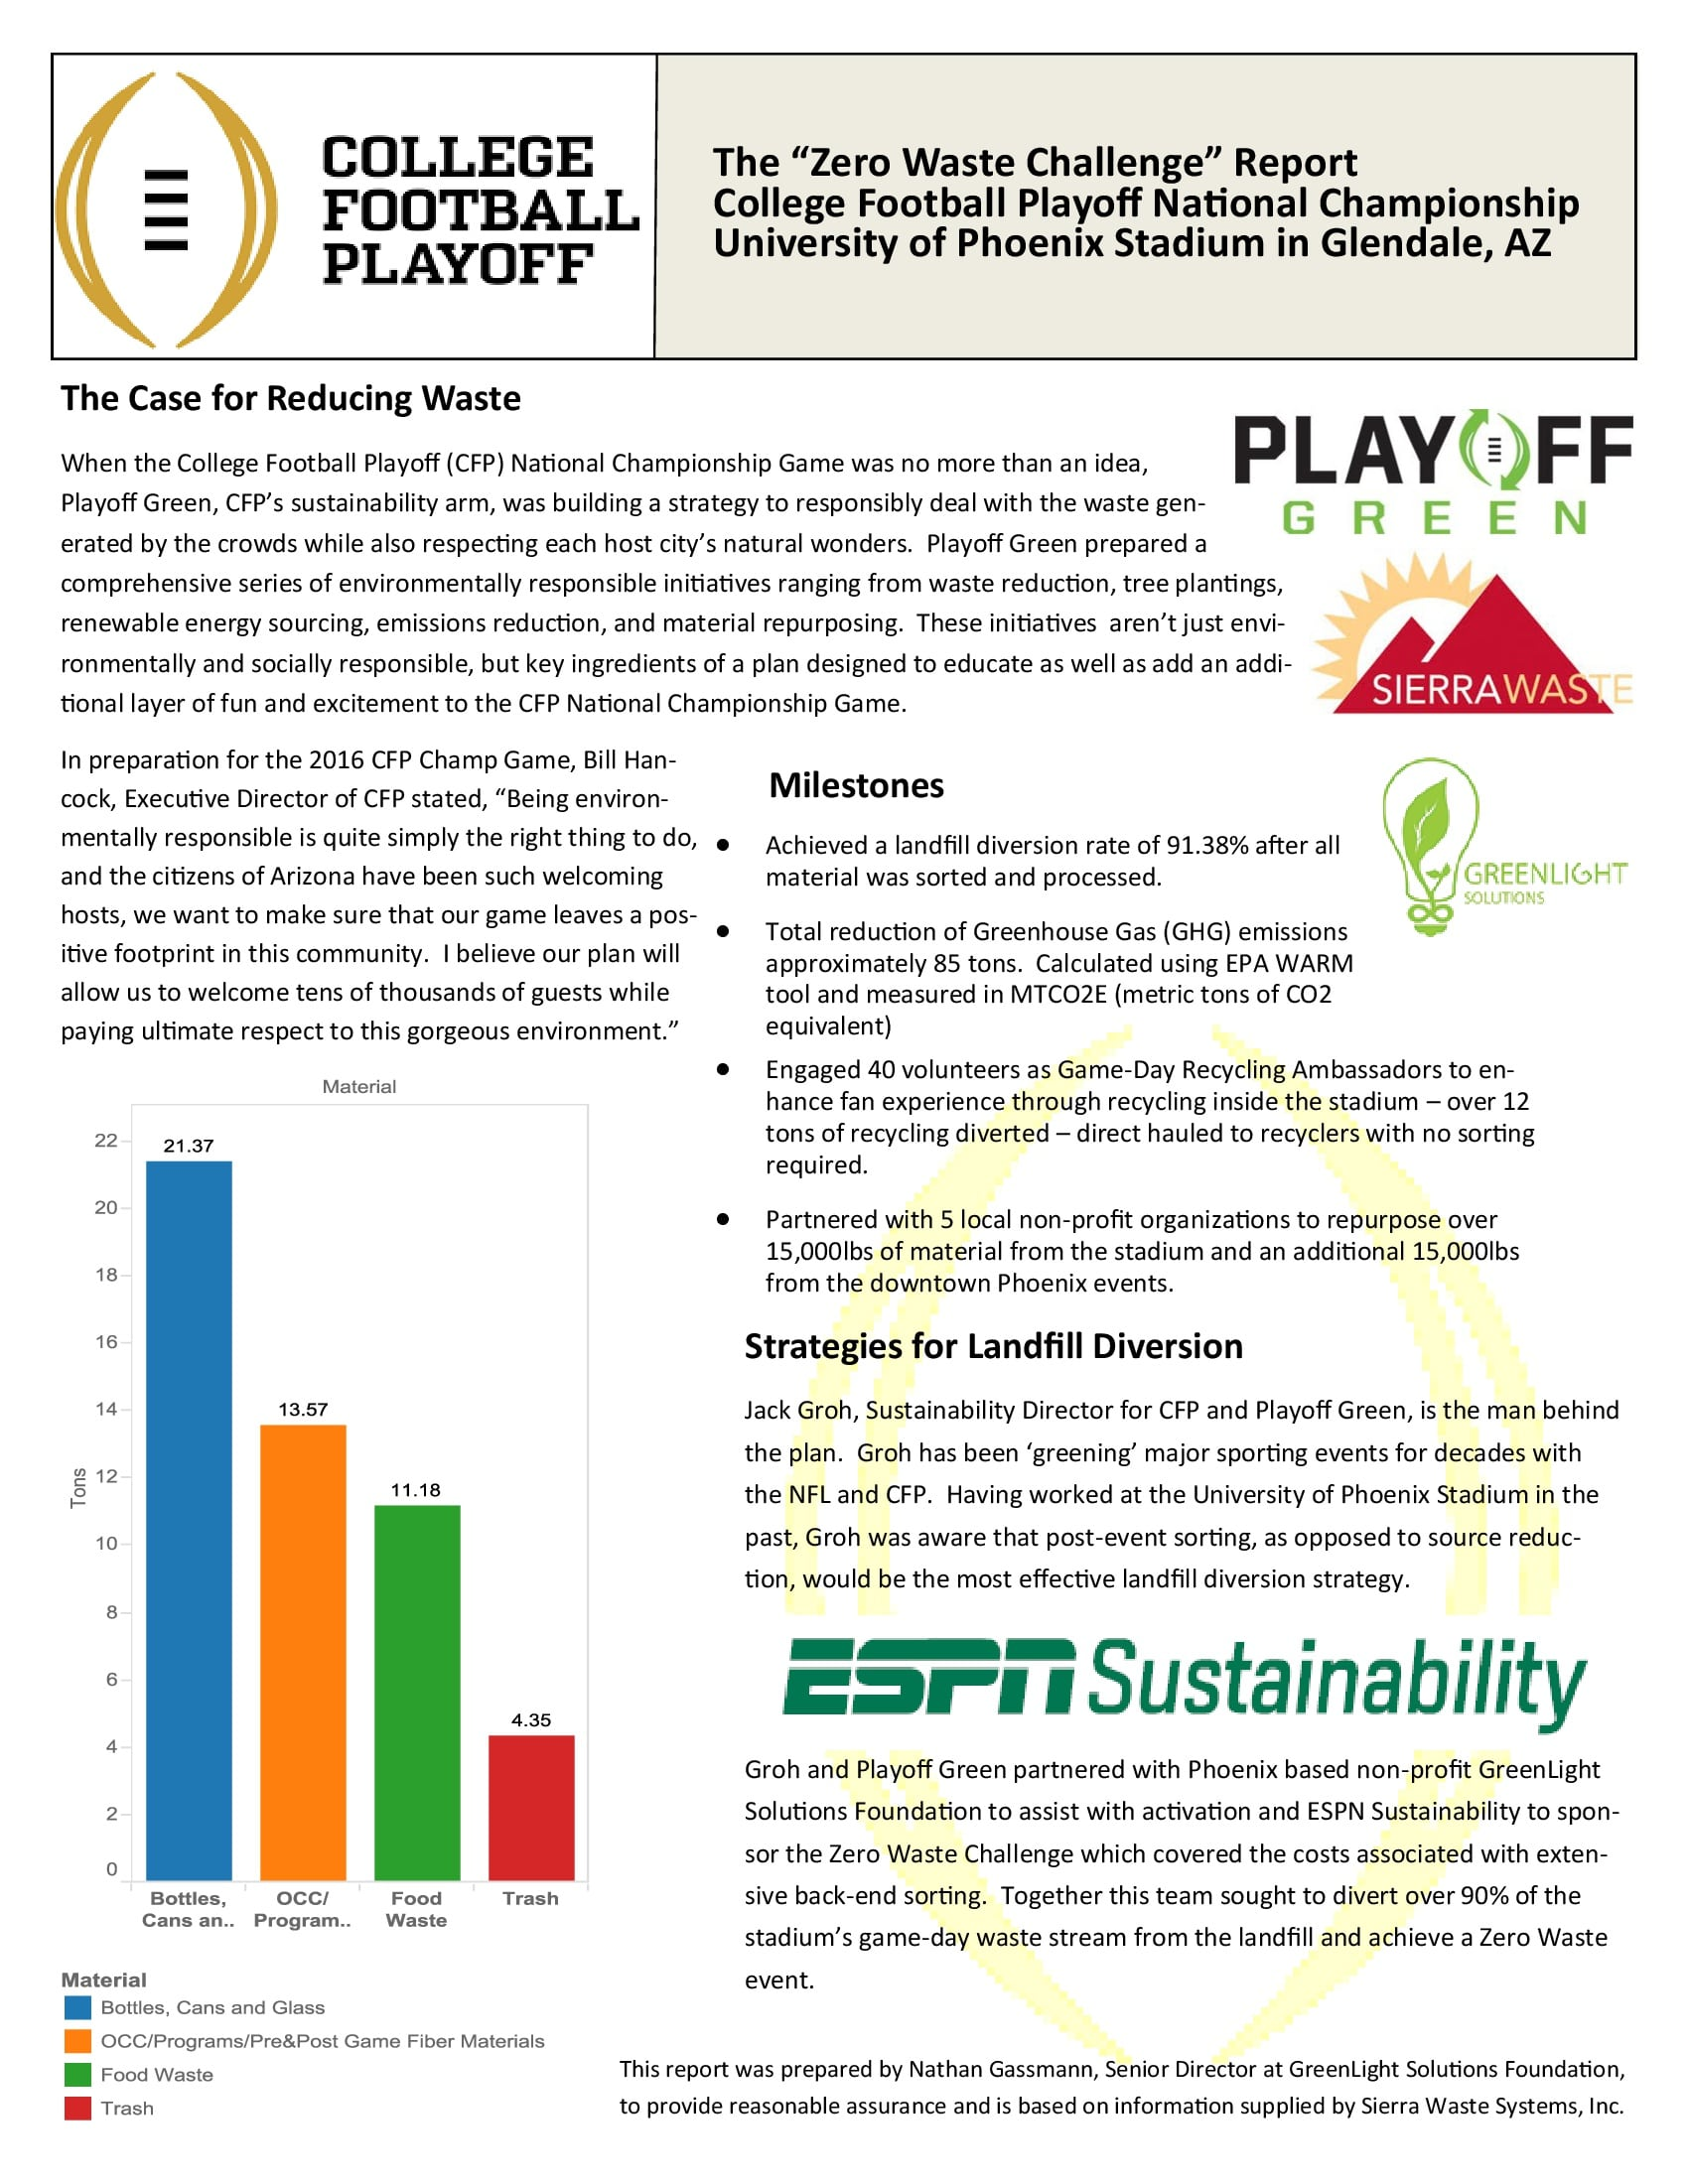 Sierra Waste College Football Playoff Zero Waste Challenge